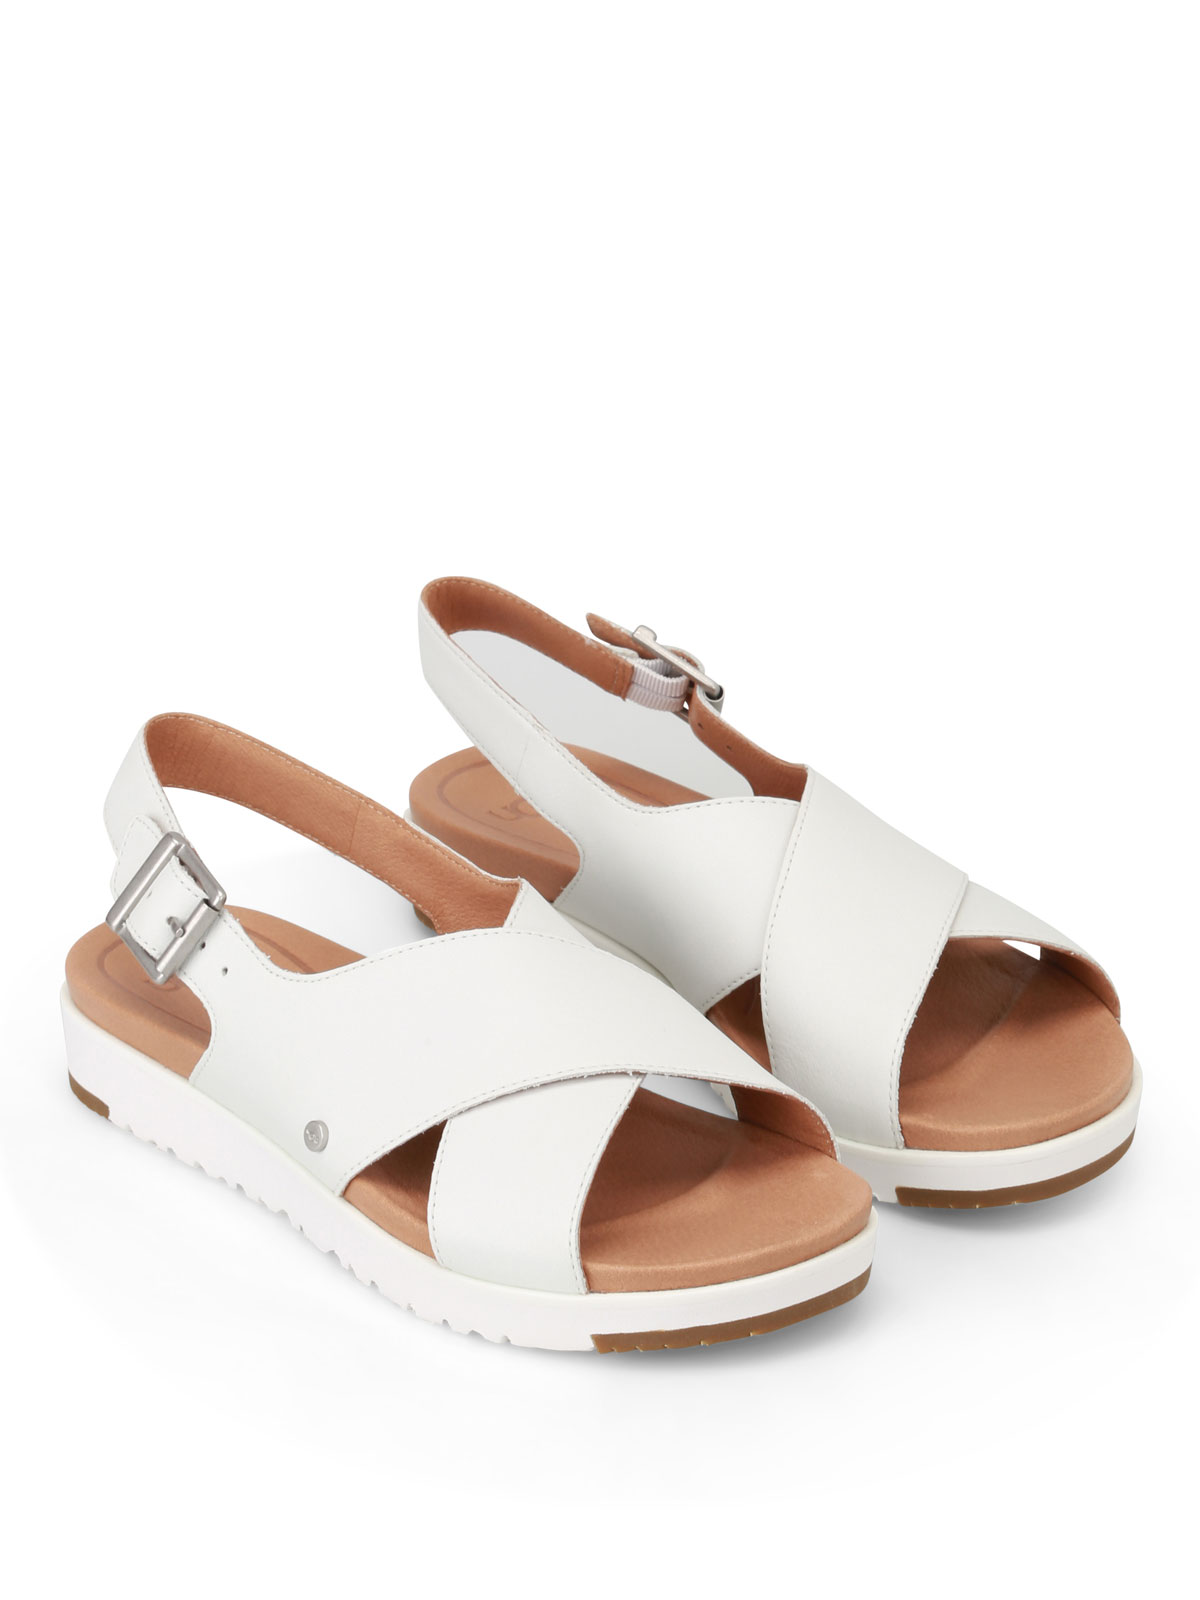 Ugg Kamile white leather sandals sandals W KAMILE